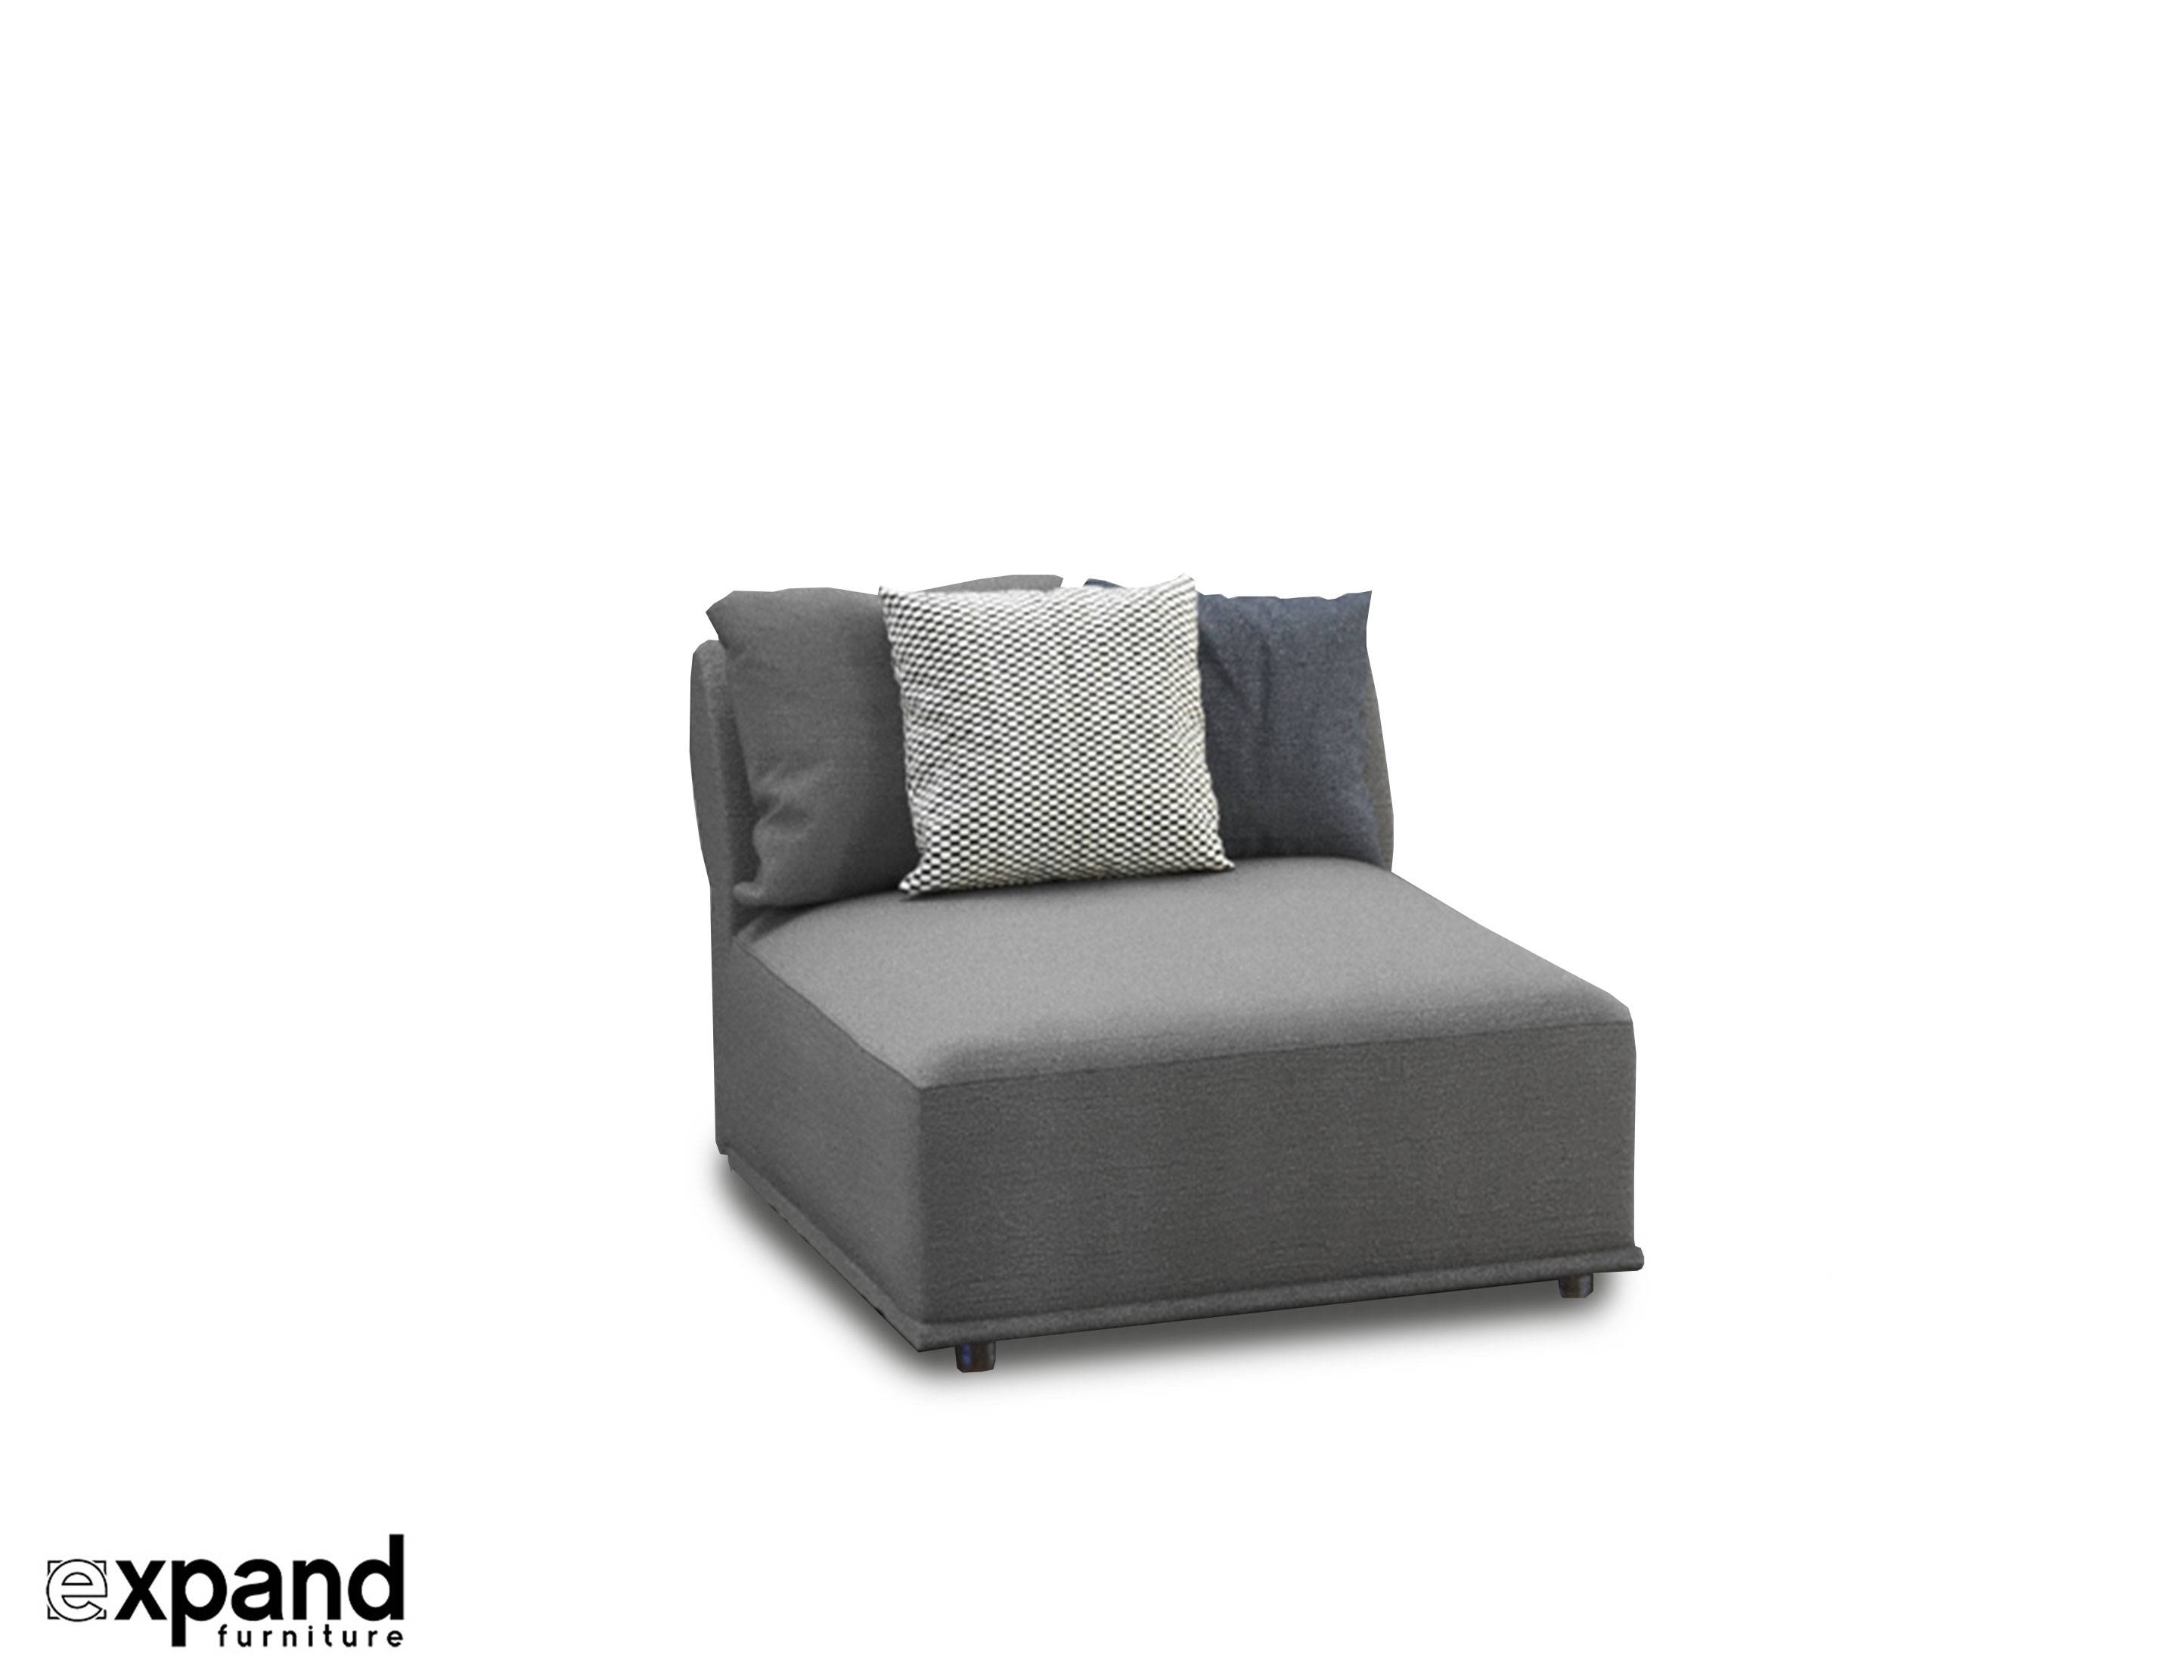 Stratus Sofa: Single Modular Seat | Expand Furniture - Folding inside Single Chair Sofa Bed (Image 28 of 30)